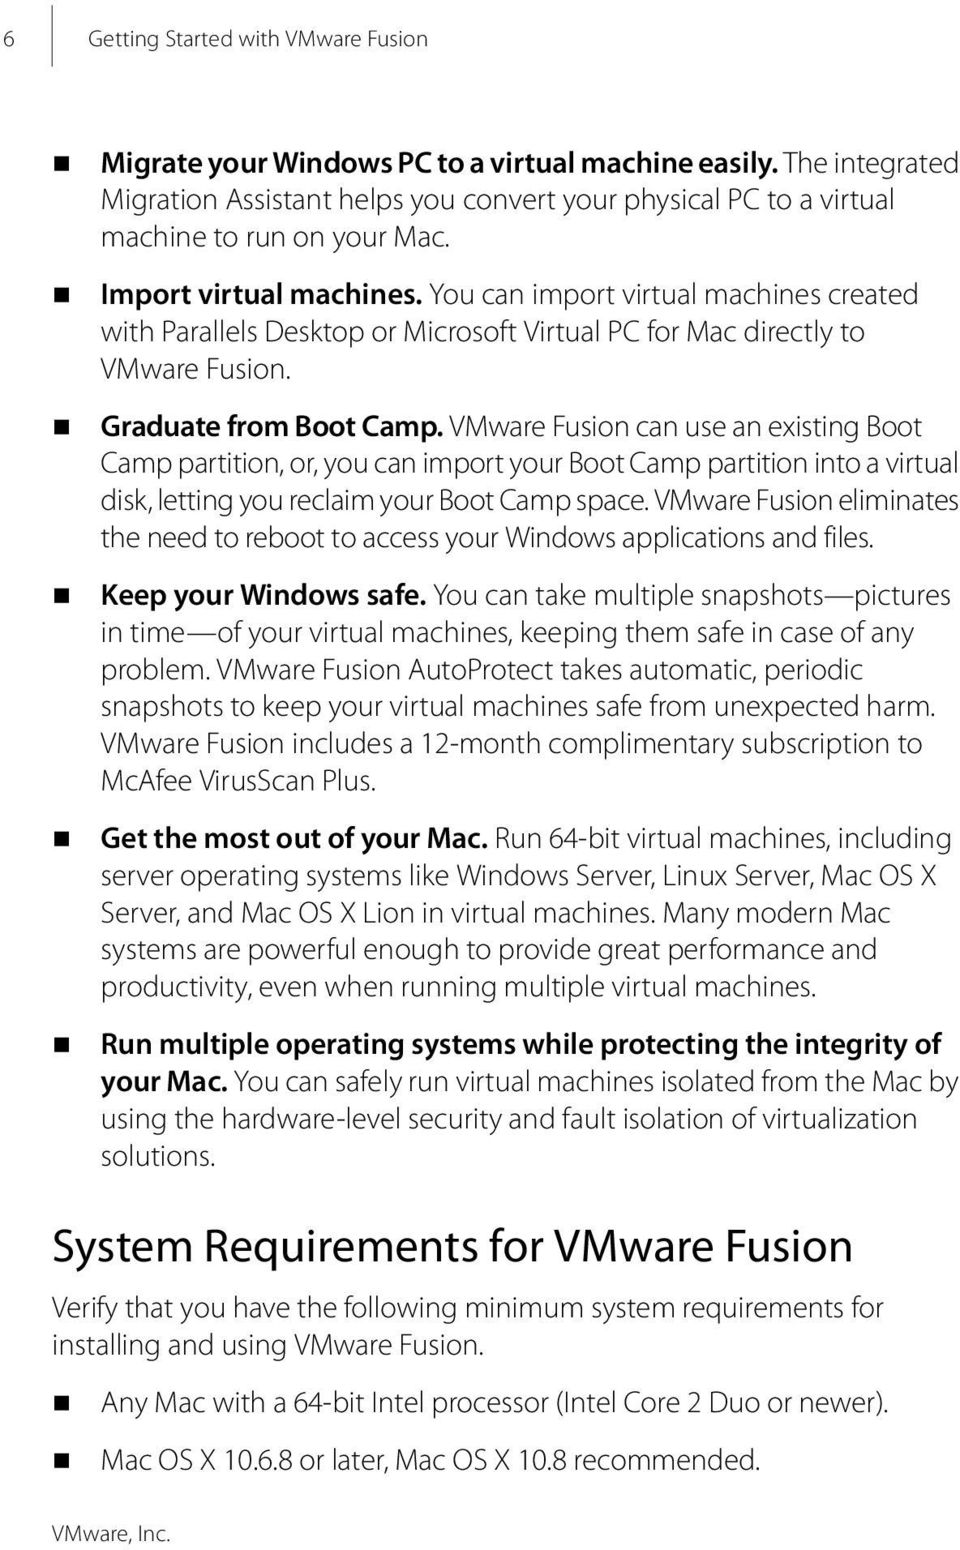 VMware Fusion can use an existing Boot Camp partition, or, you can import your Boot Camp partition into a virtual disk, letting you reclaim your Boot Camp space.